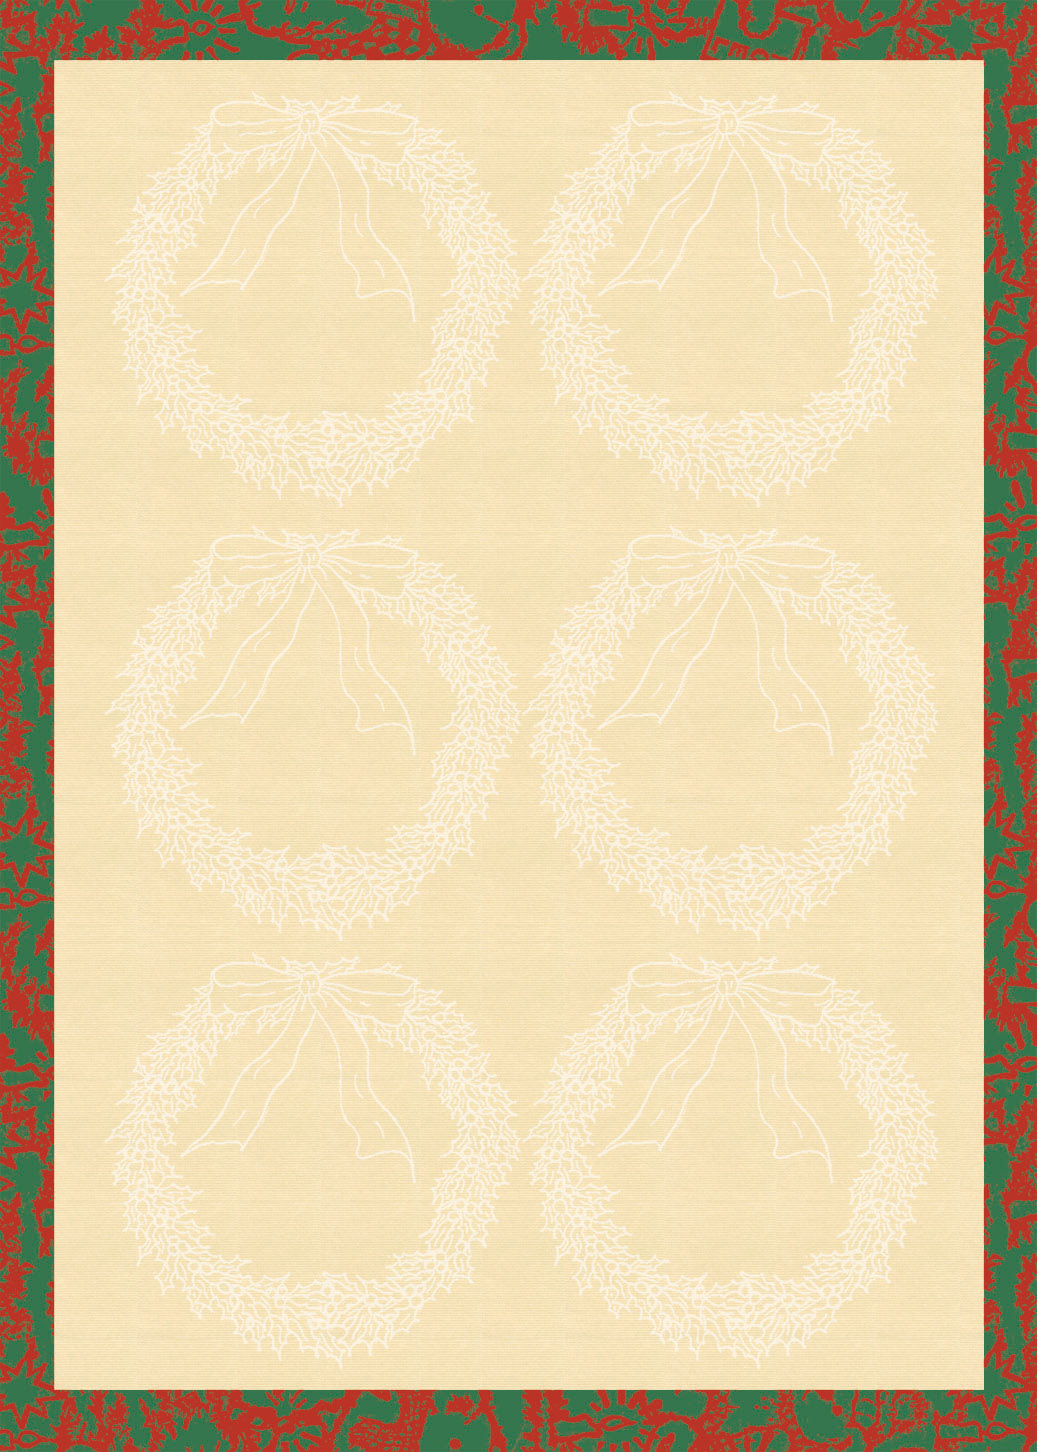 ... of Holiday Printable Paper Christmas Paper Borders printable Treasure